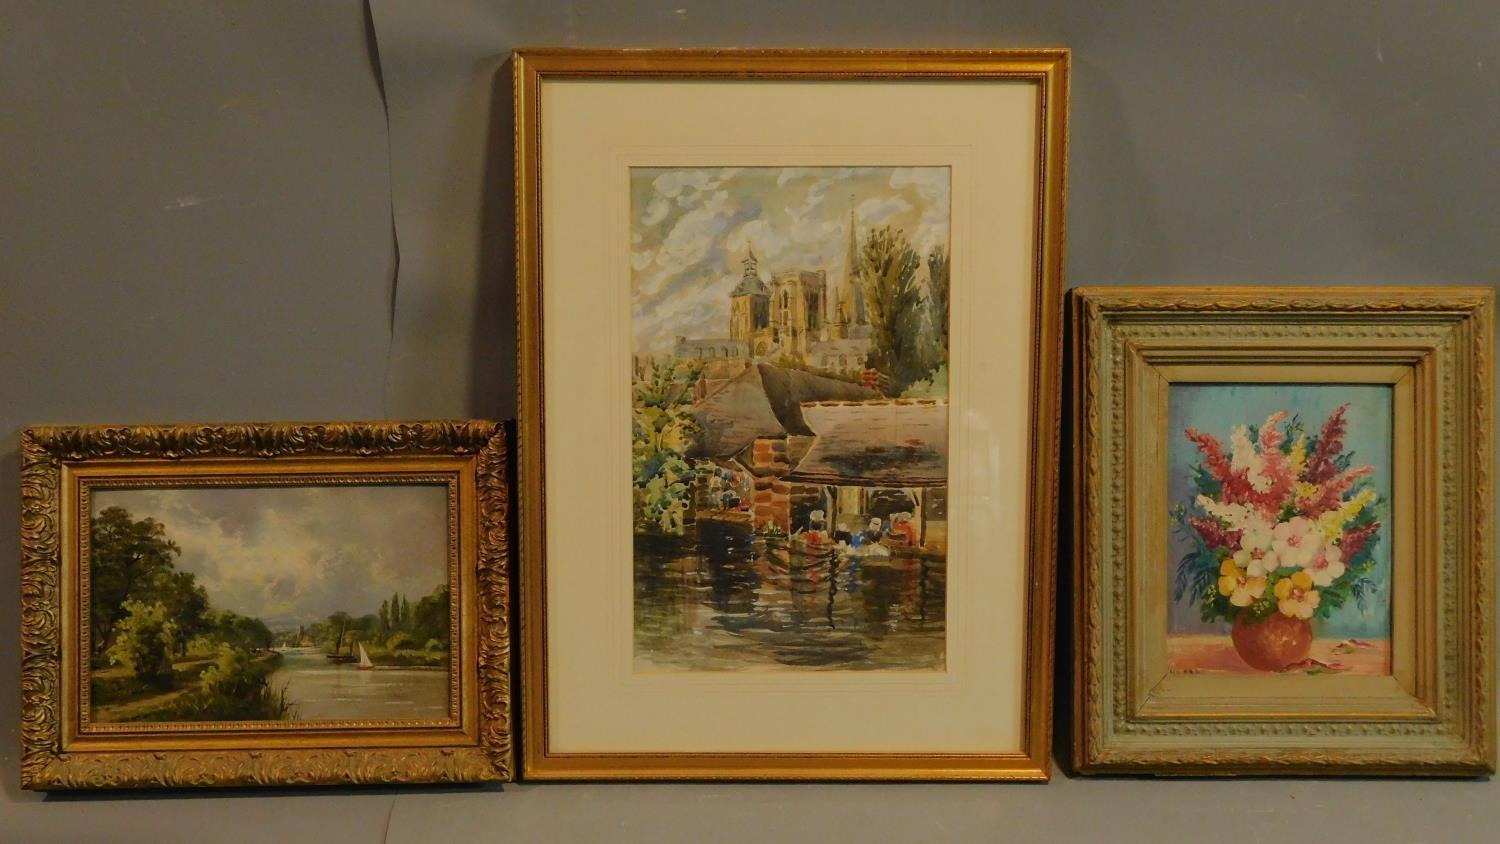 A framed and glazed watercolour, cathedral by a river, and two framed oil paintings, still life